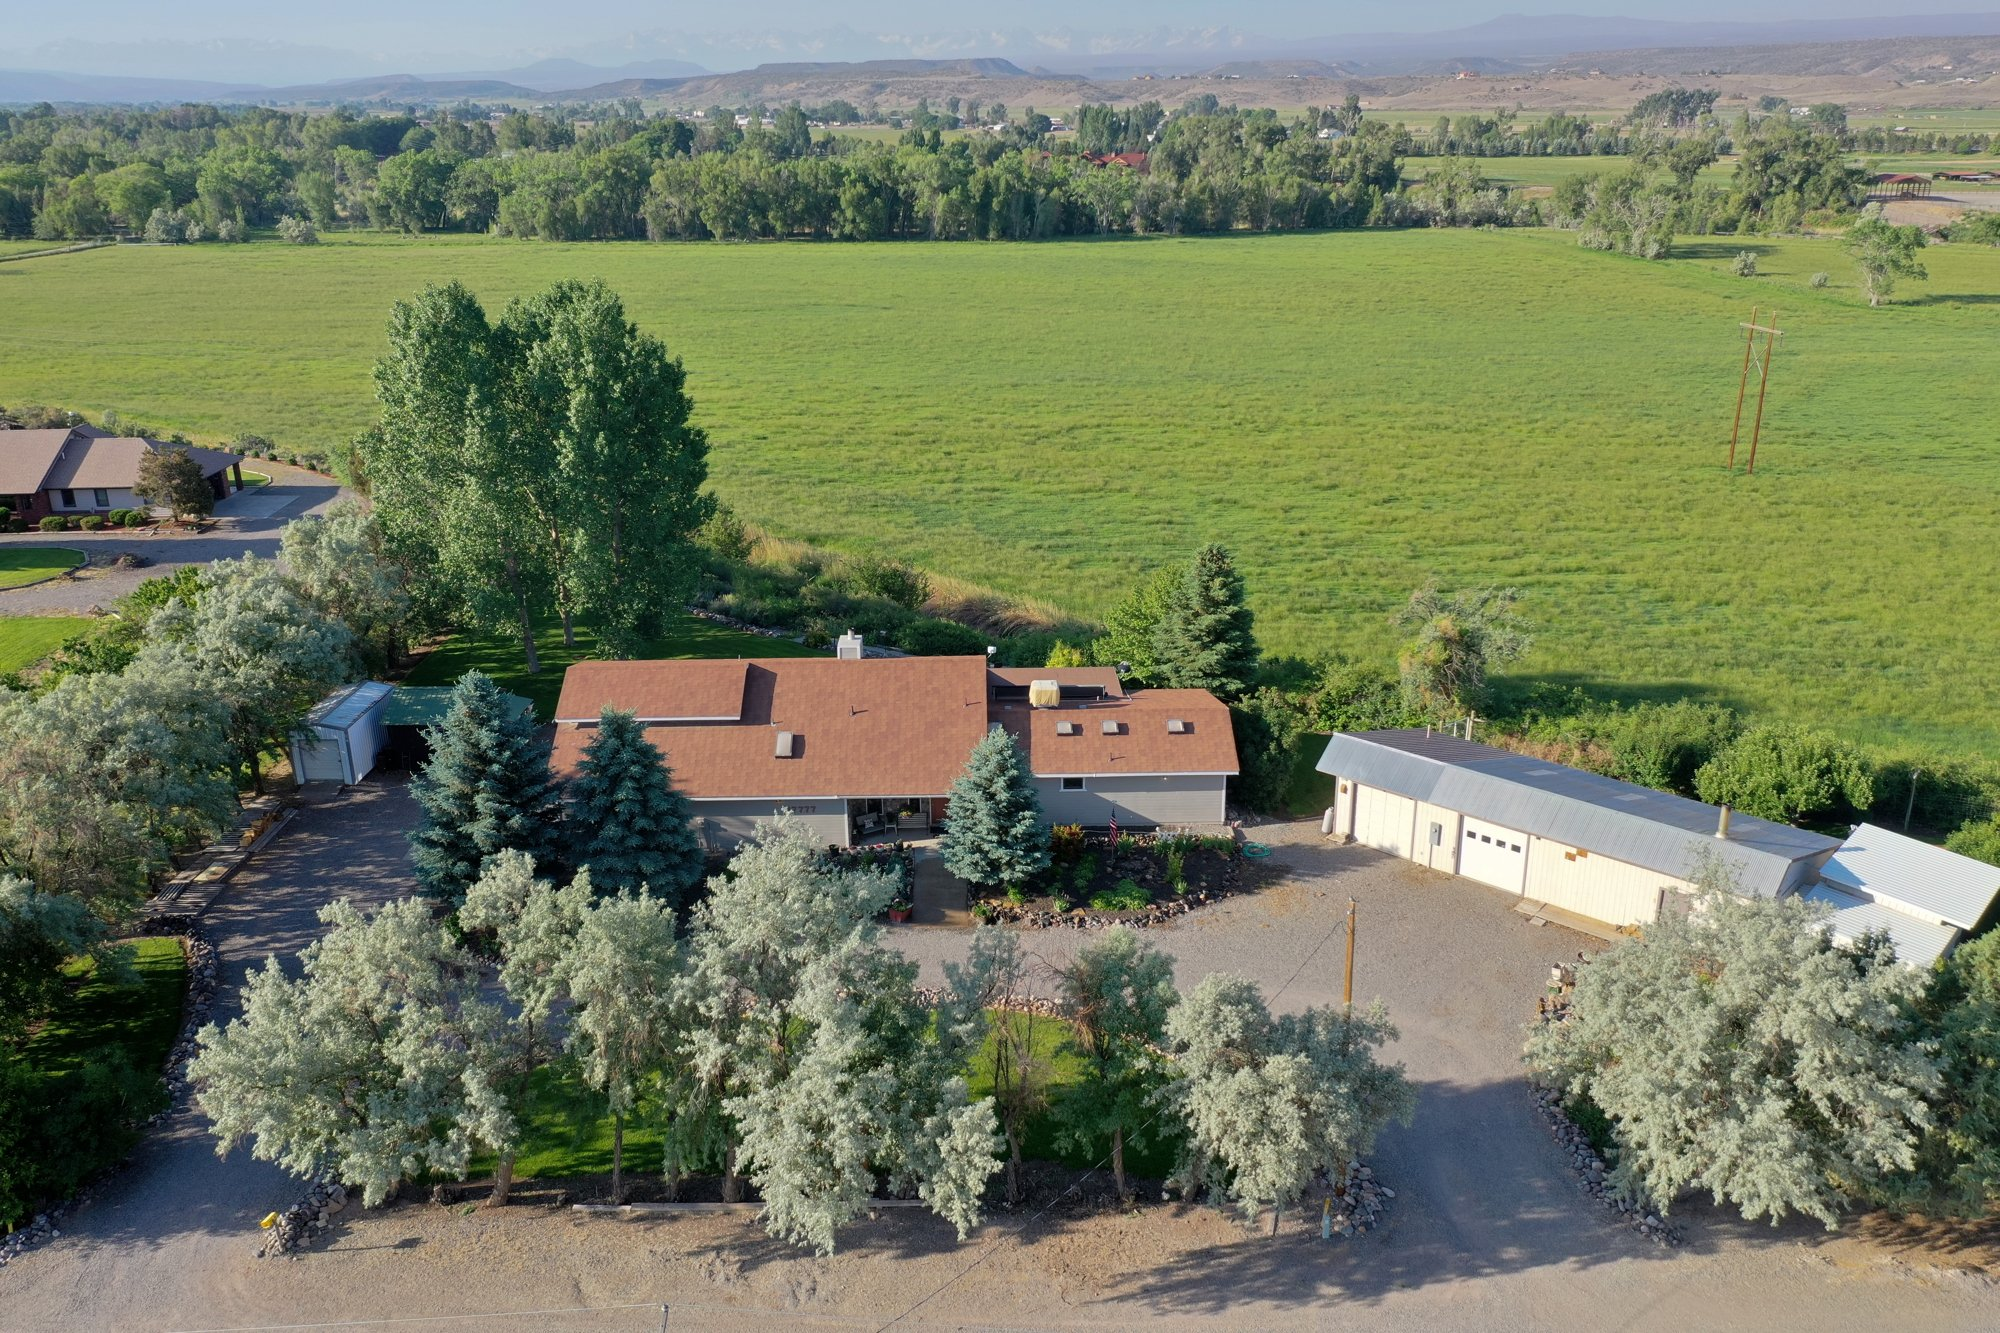 Aerial View of Home and Outbuildings - 17777 6650 Rd Montrose, CO 81403 - Atha Team Country Real Estate